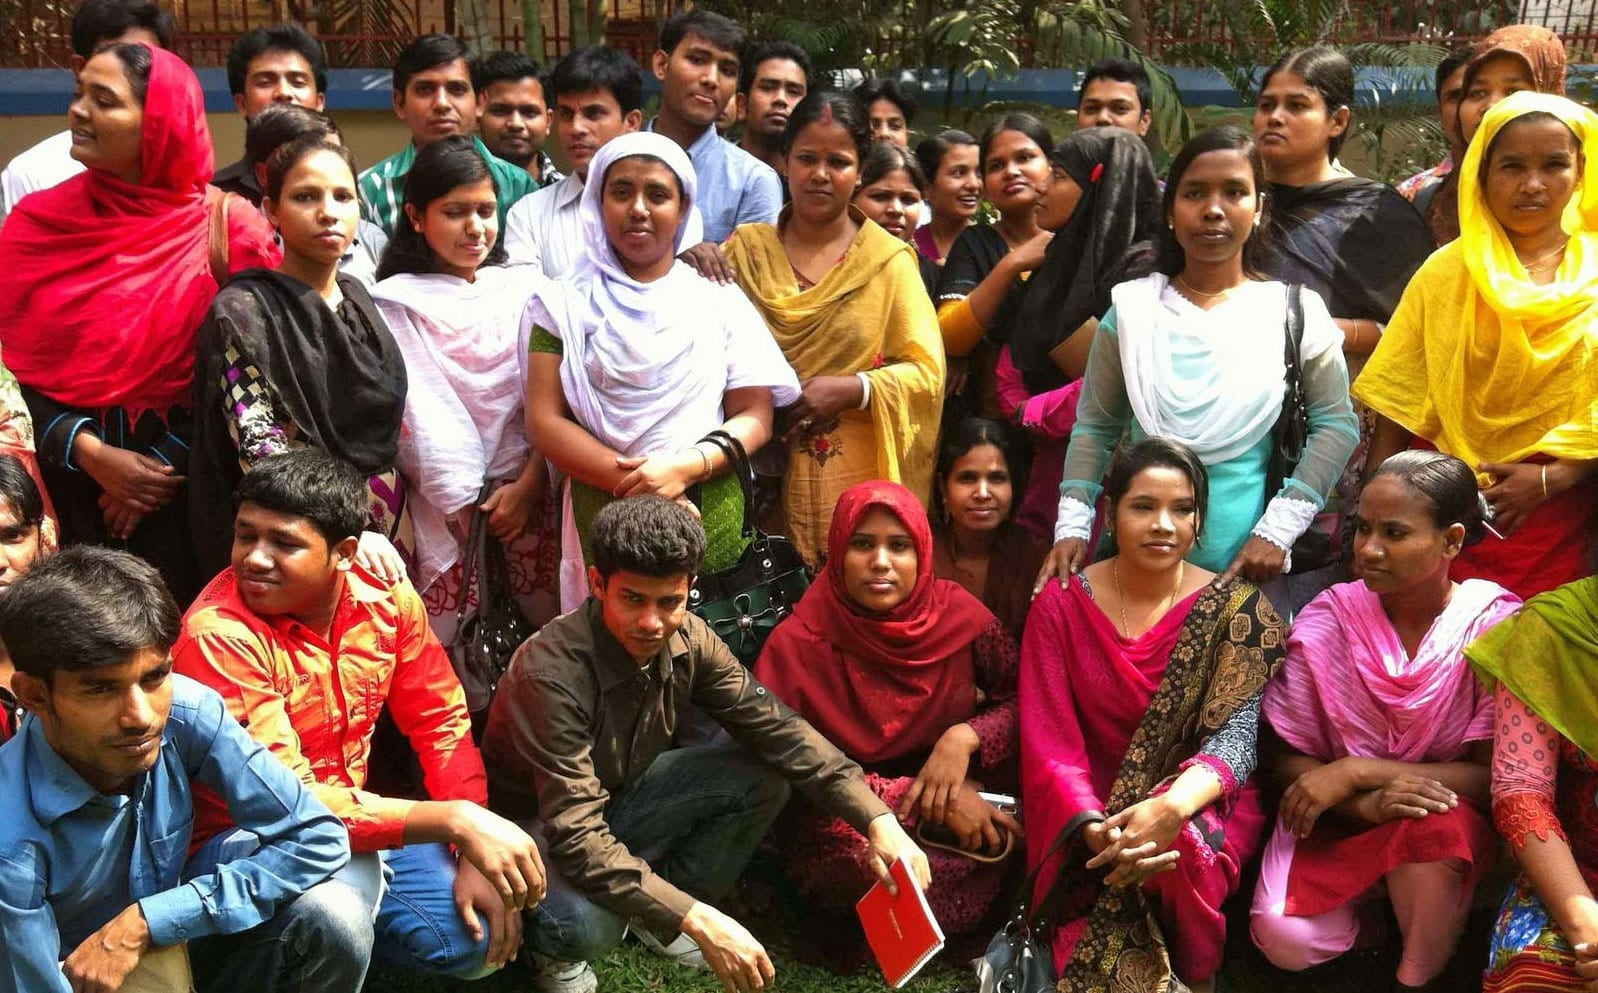 Garment worker leaders at a meeting